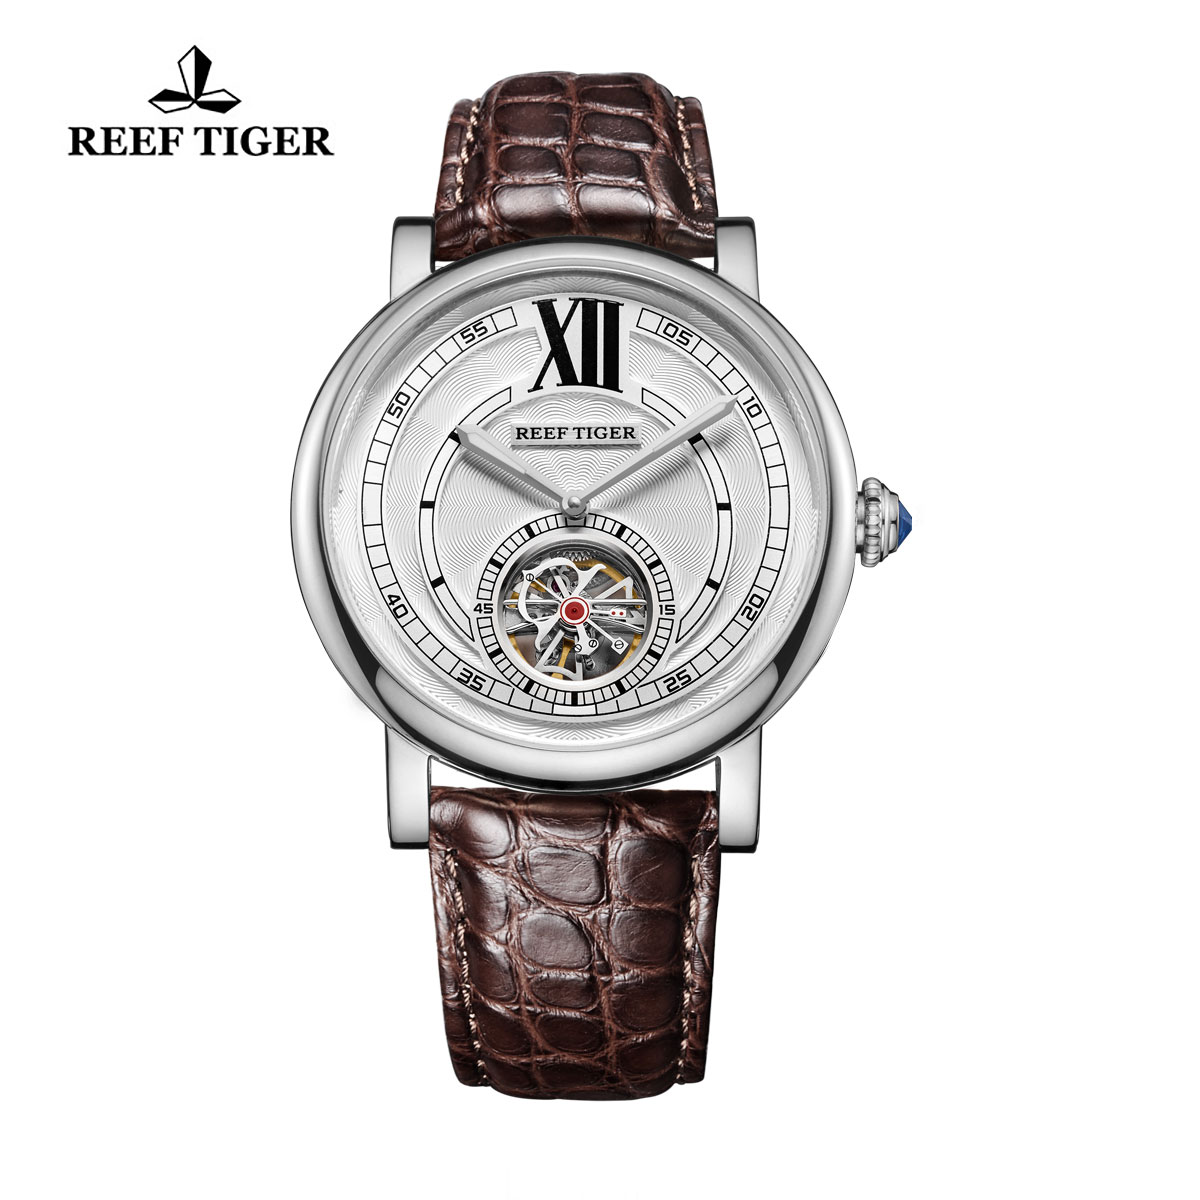 Reef Tiger Royal Crown Tourbillon Watches Steel Case White Dial Blue Crystal Crown RGA192